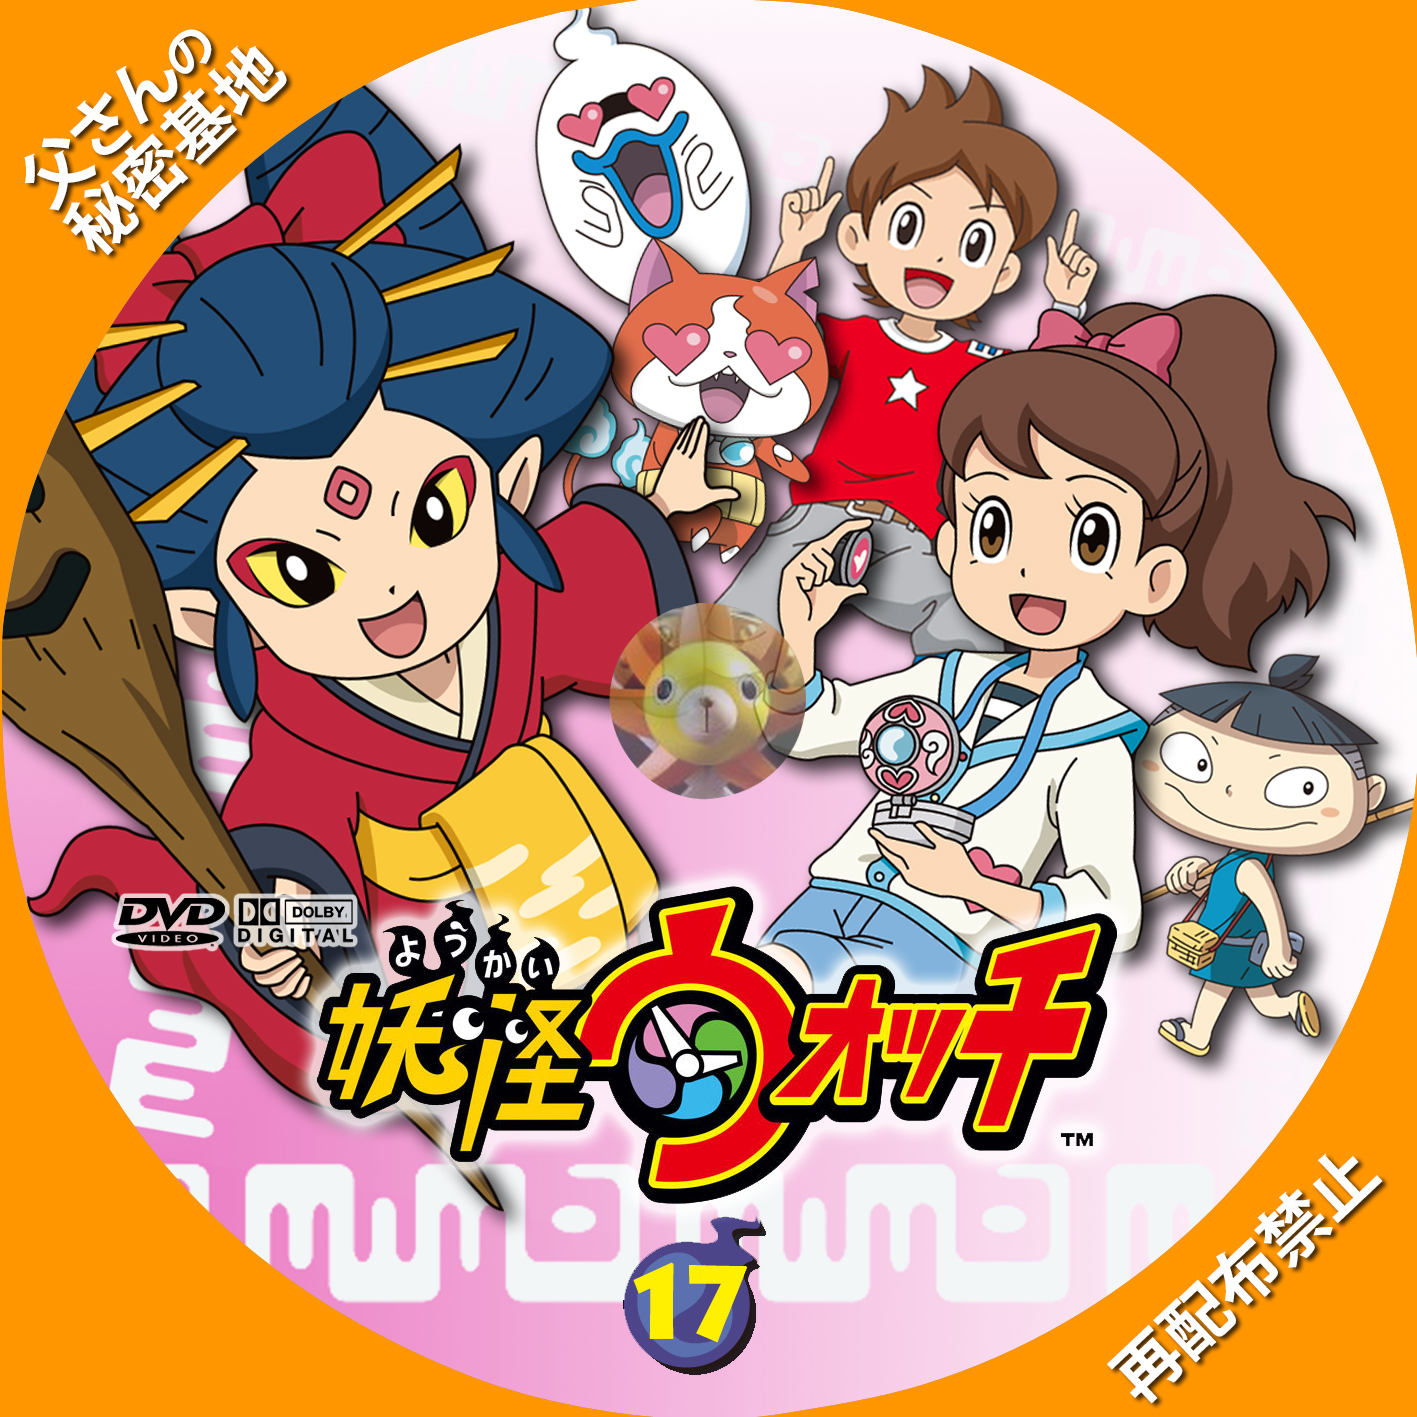 youkai-watch_17DVDb.jpg